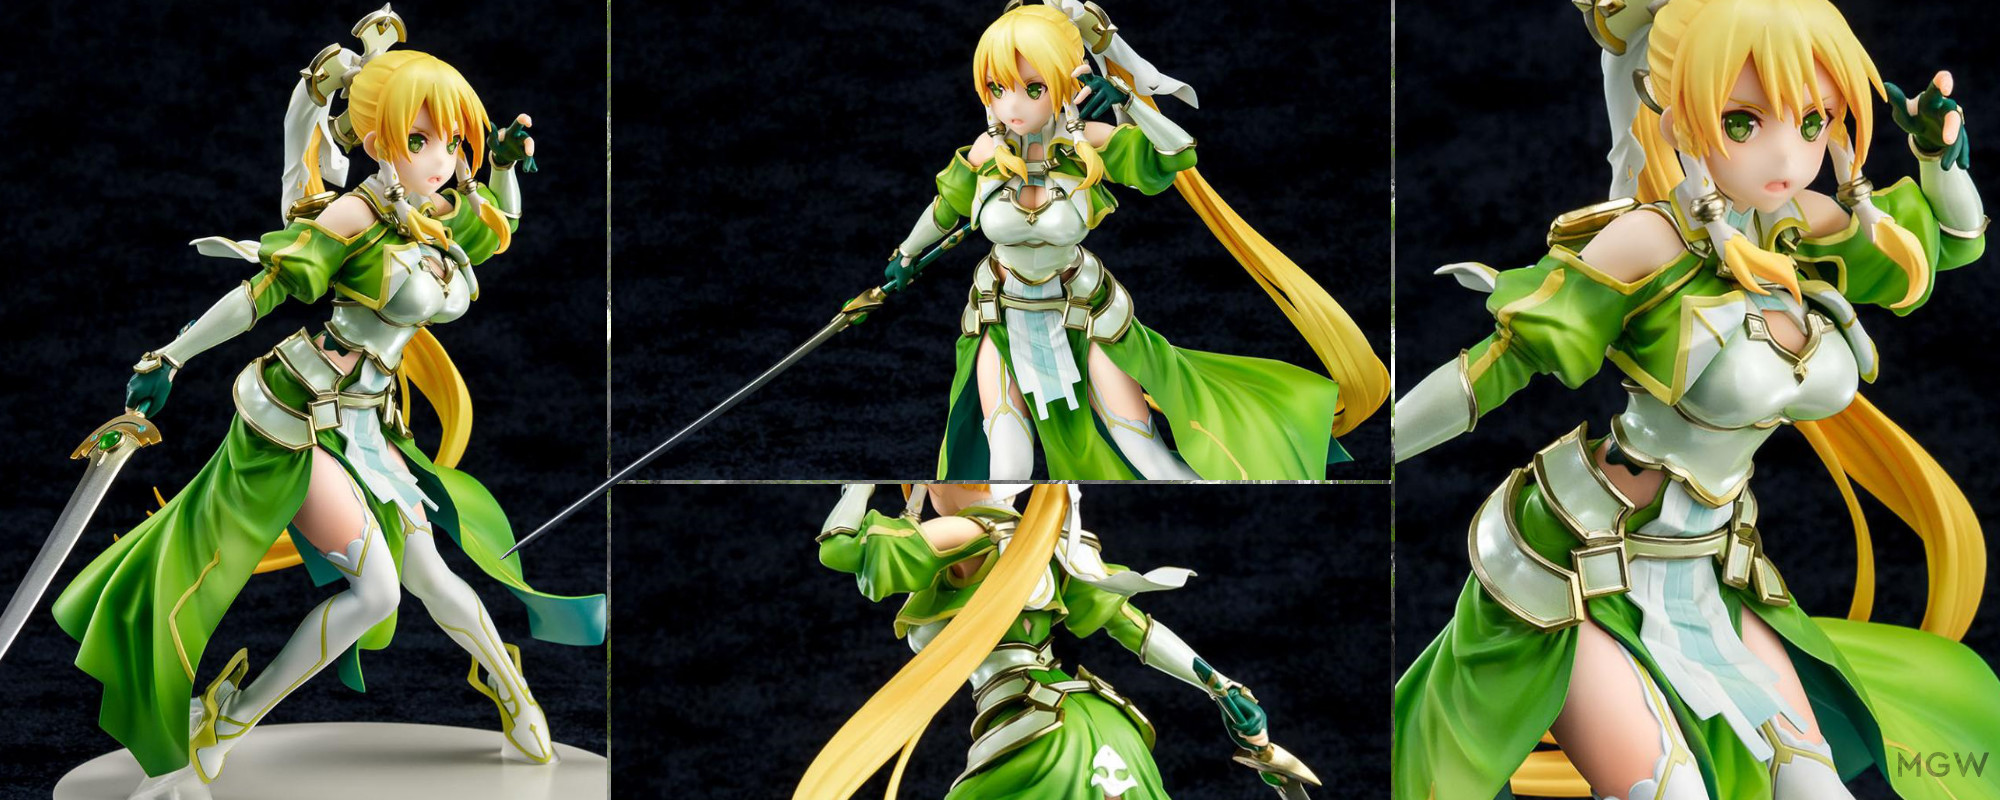 《Goddess of Earth Terraria》 Leafa from Sword Art Online